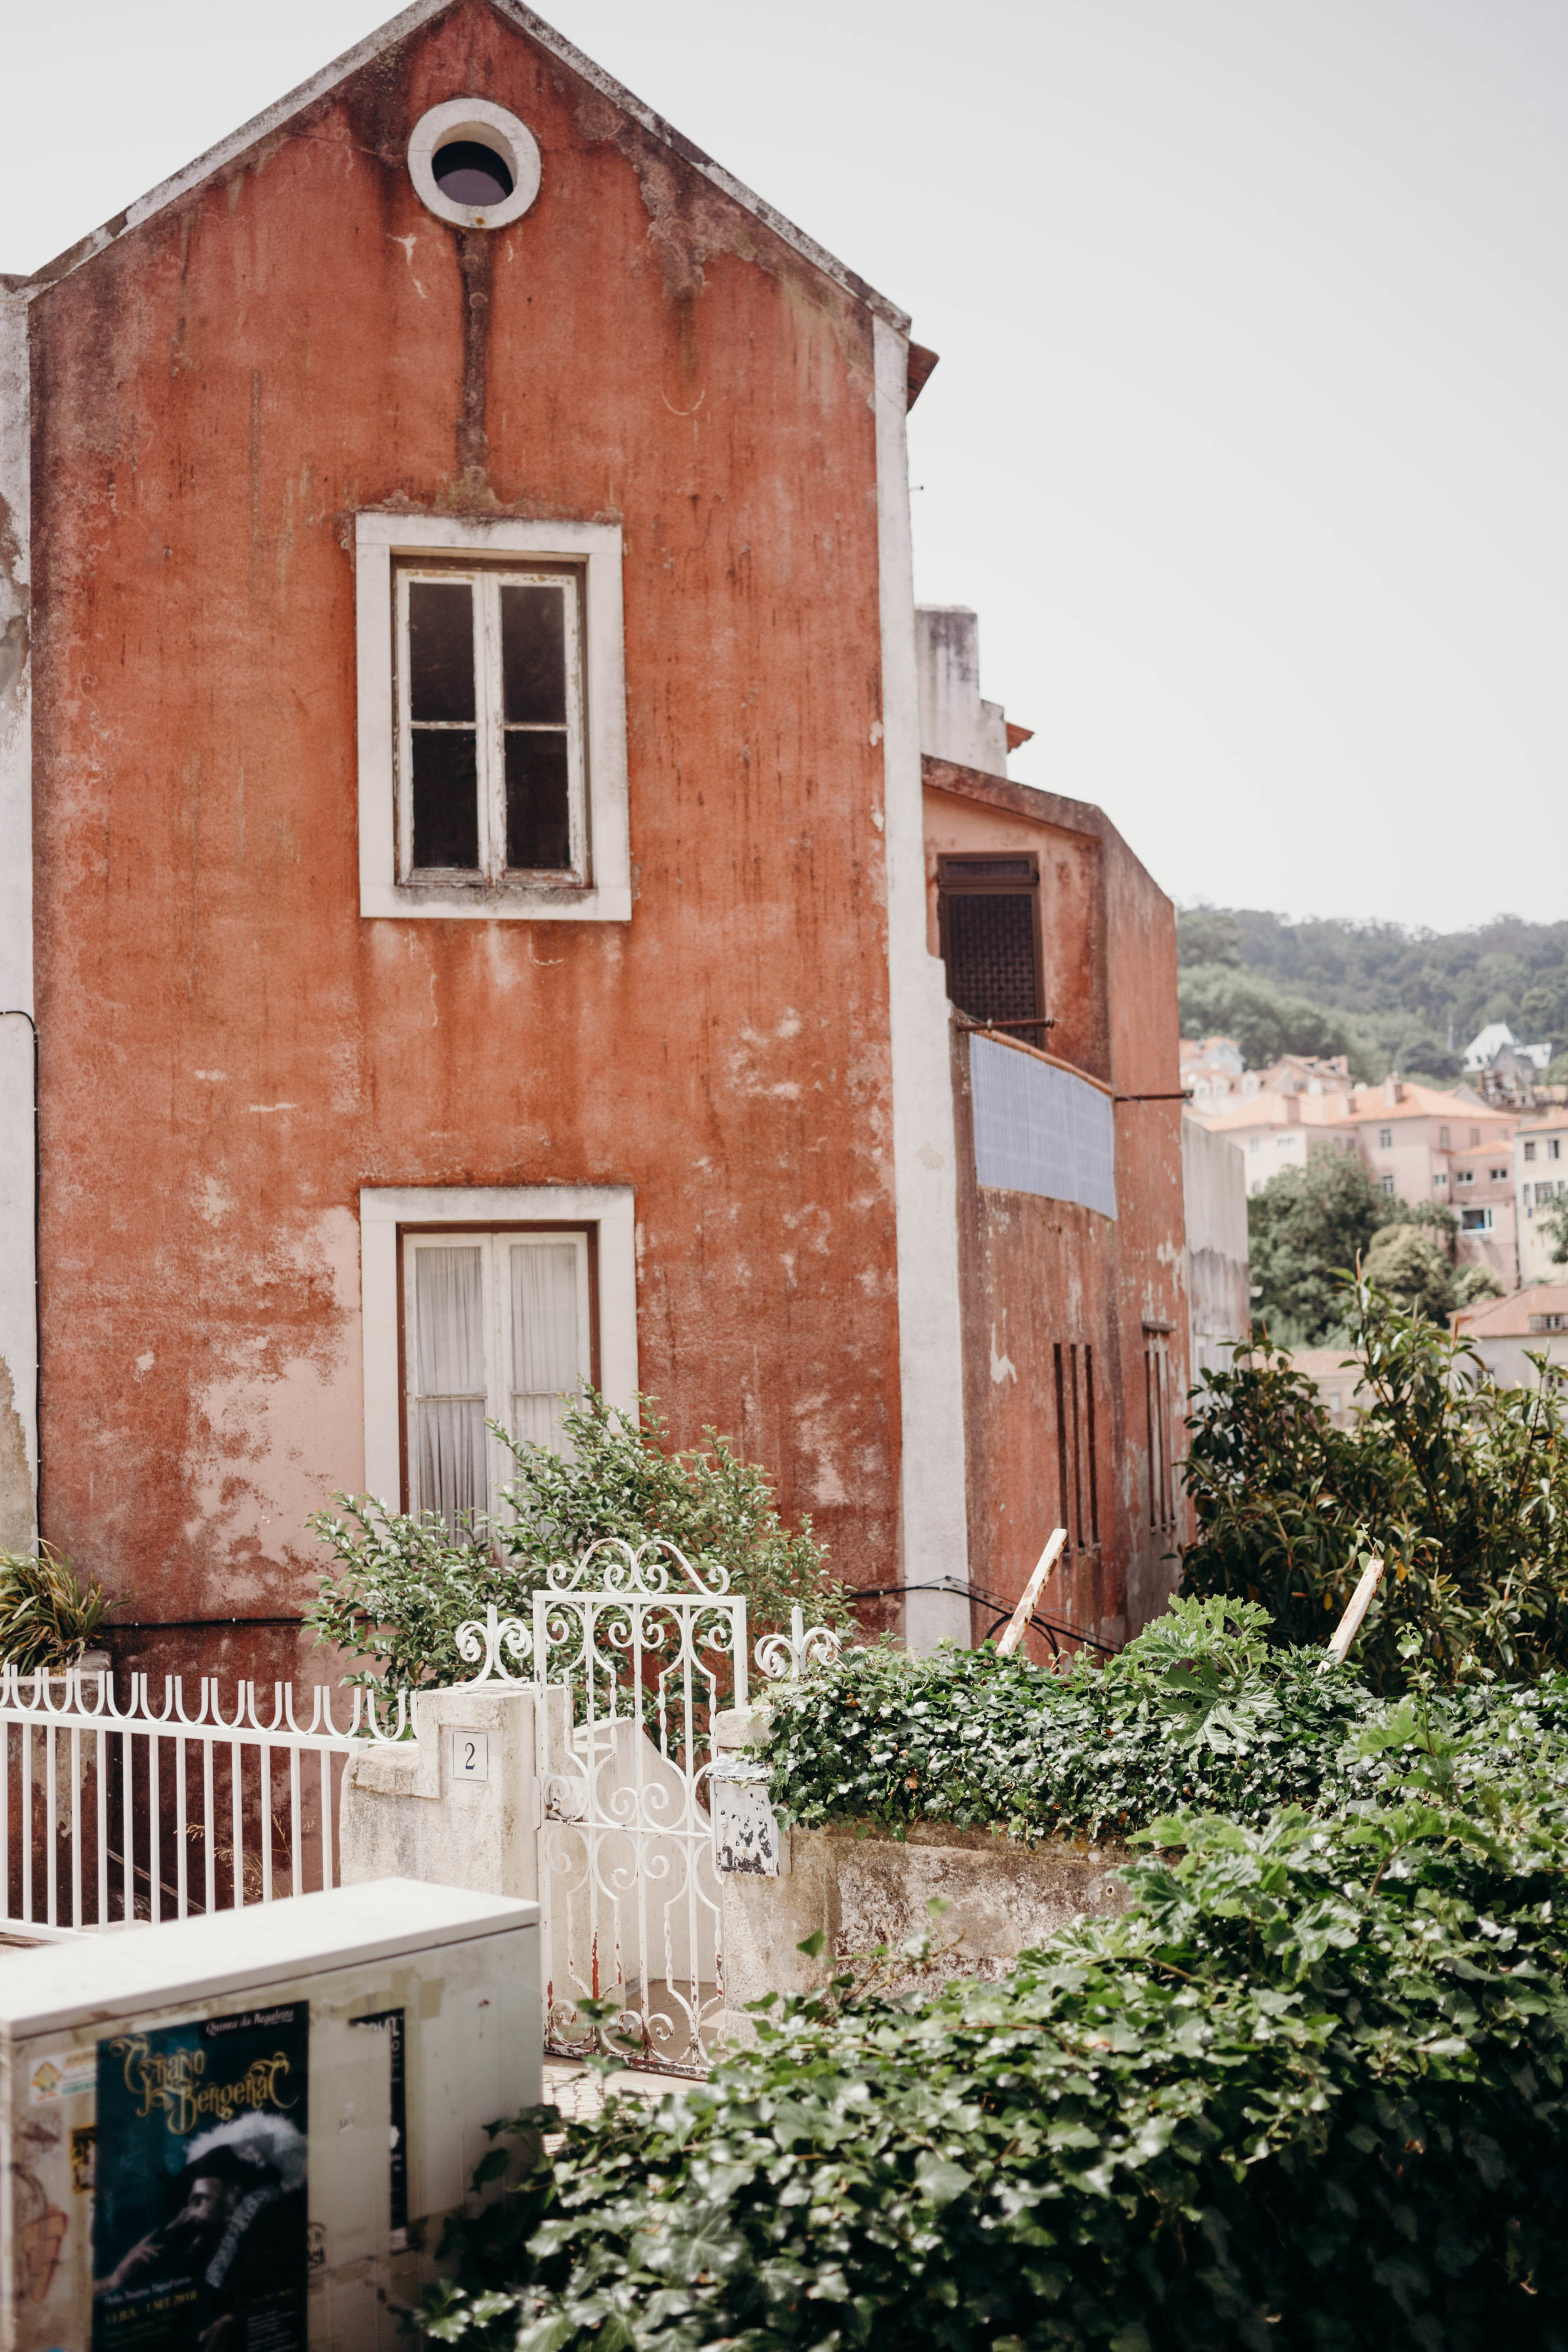 Our Portugal Travel Diary: Lisbon, Porto, and More | On the Street Where We Live (aretherelilactrees.com)  Sintra